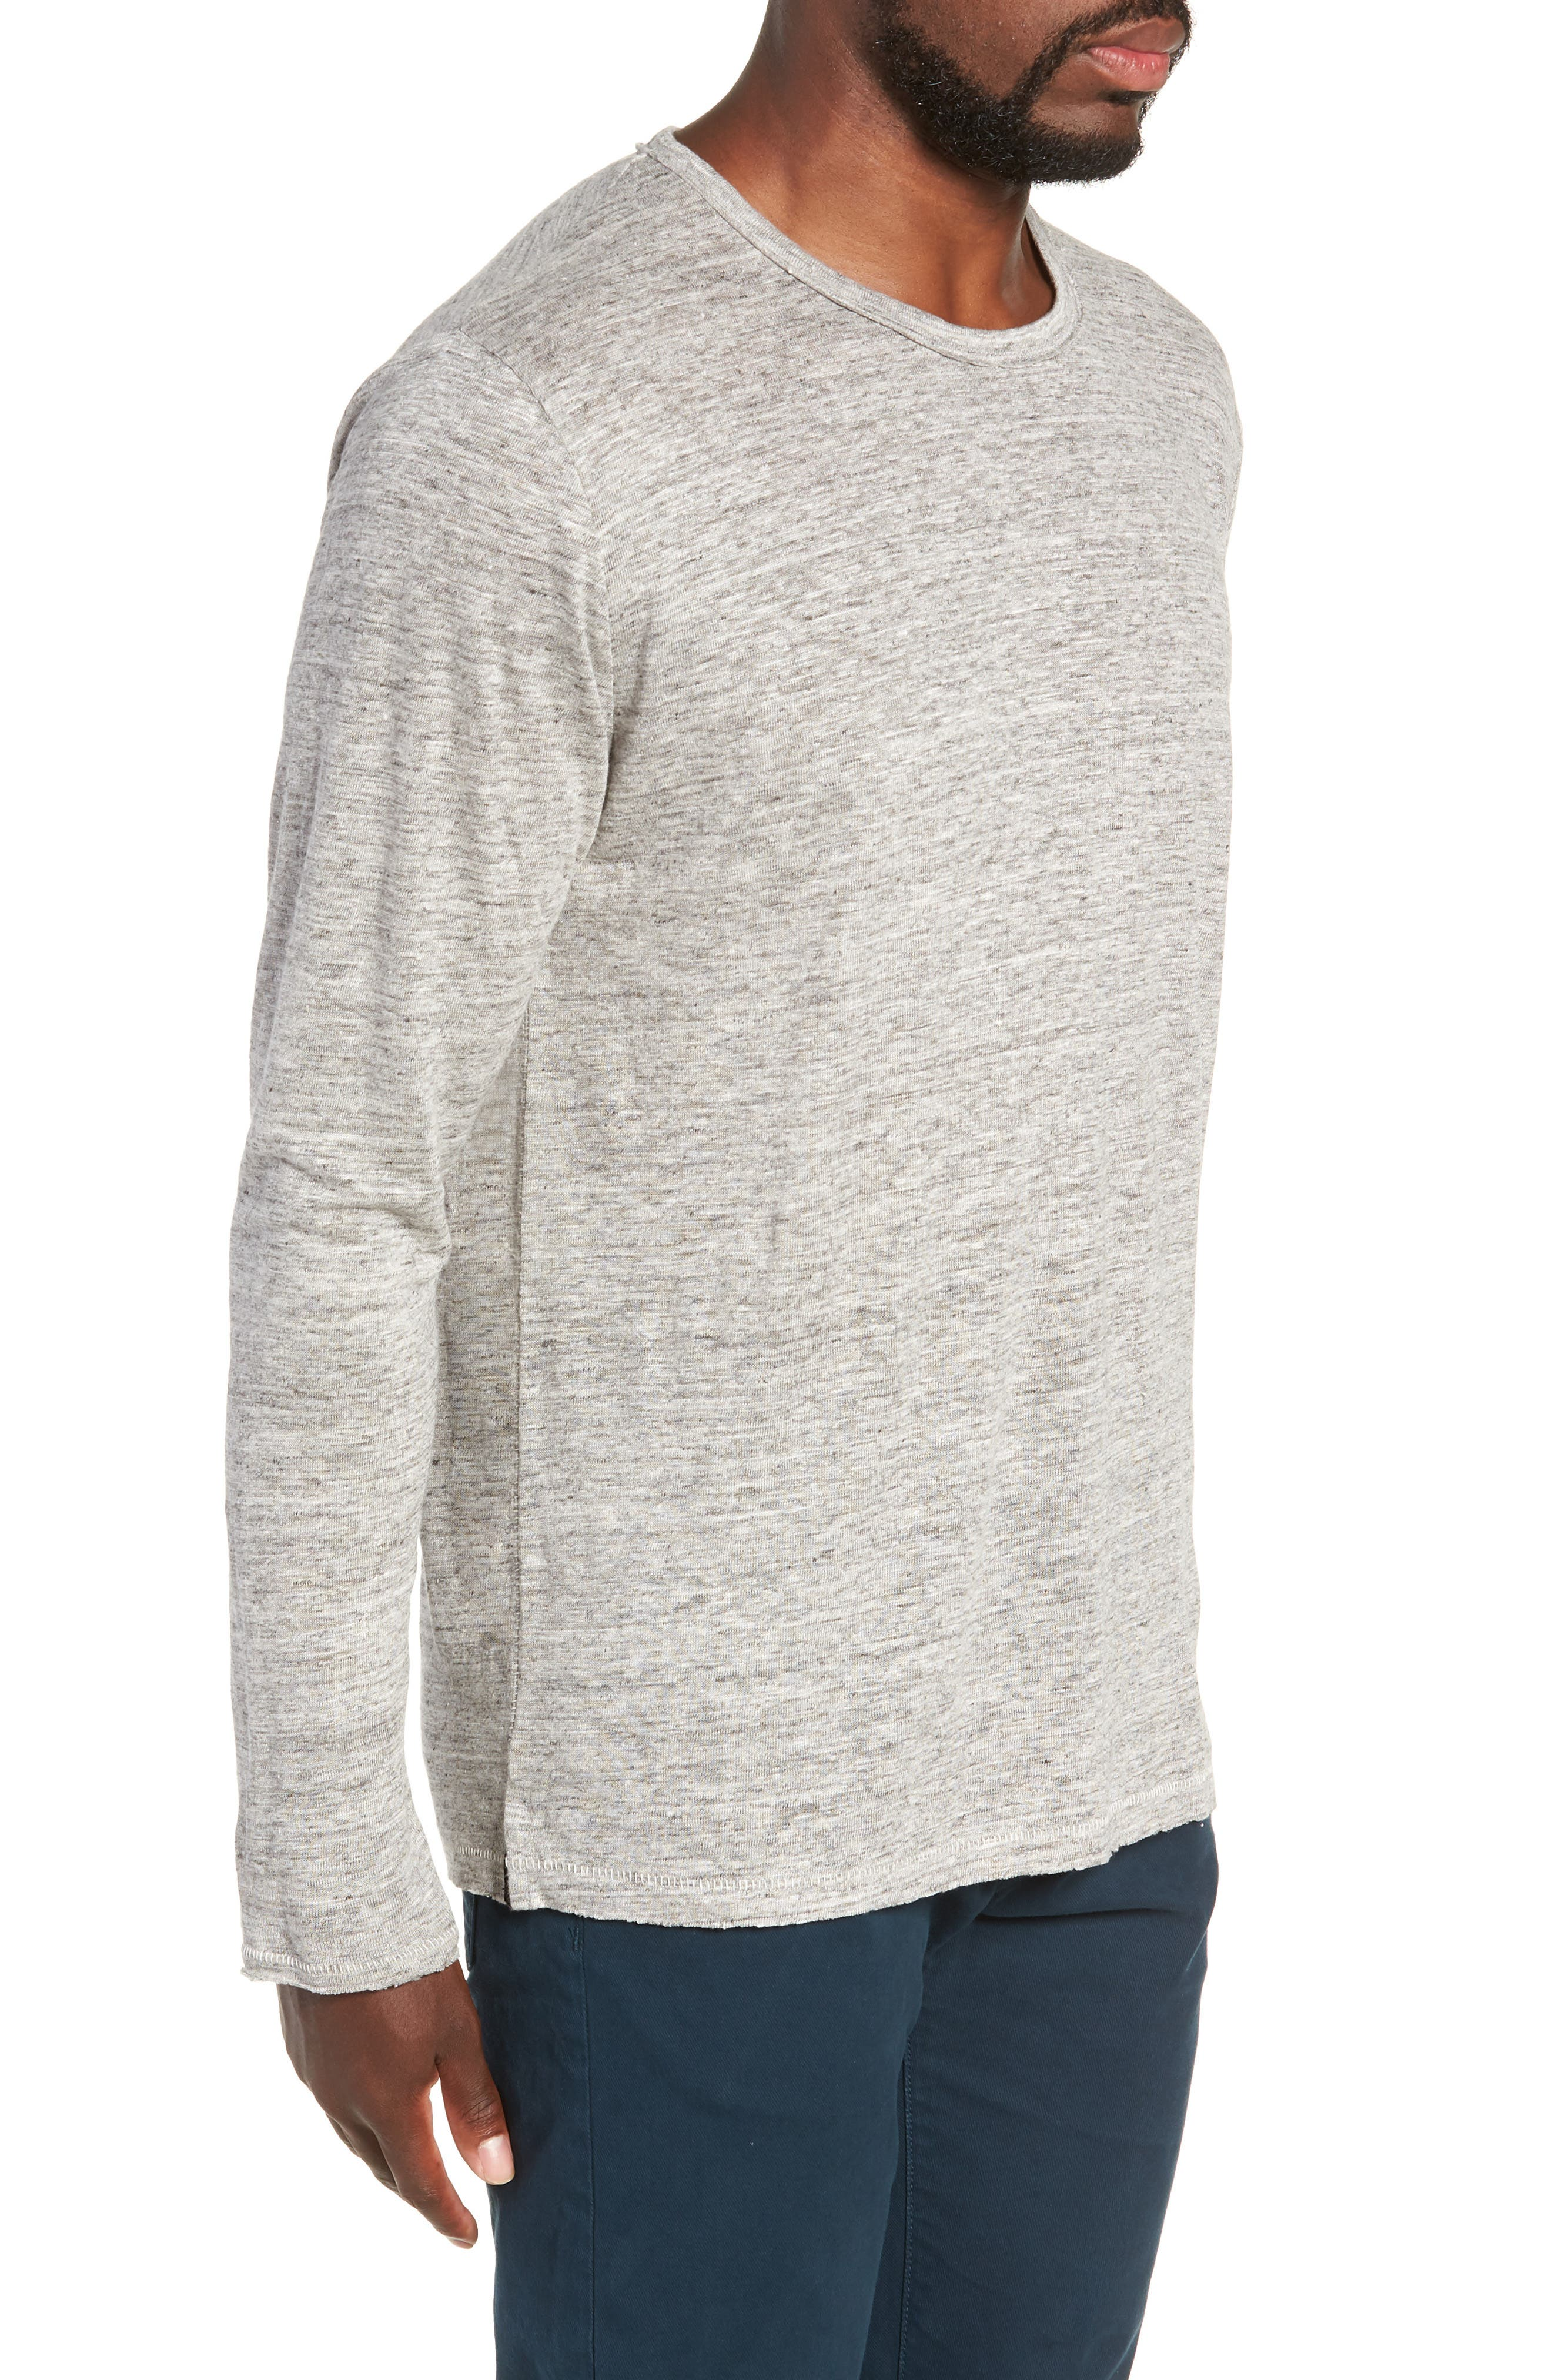 Owen Linen Long Sleeve T-Shirt,                             Alternate thumbnail 3, color,                             020